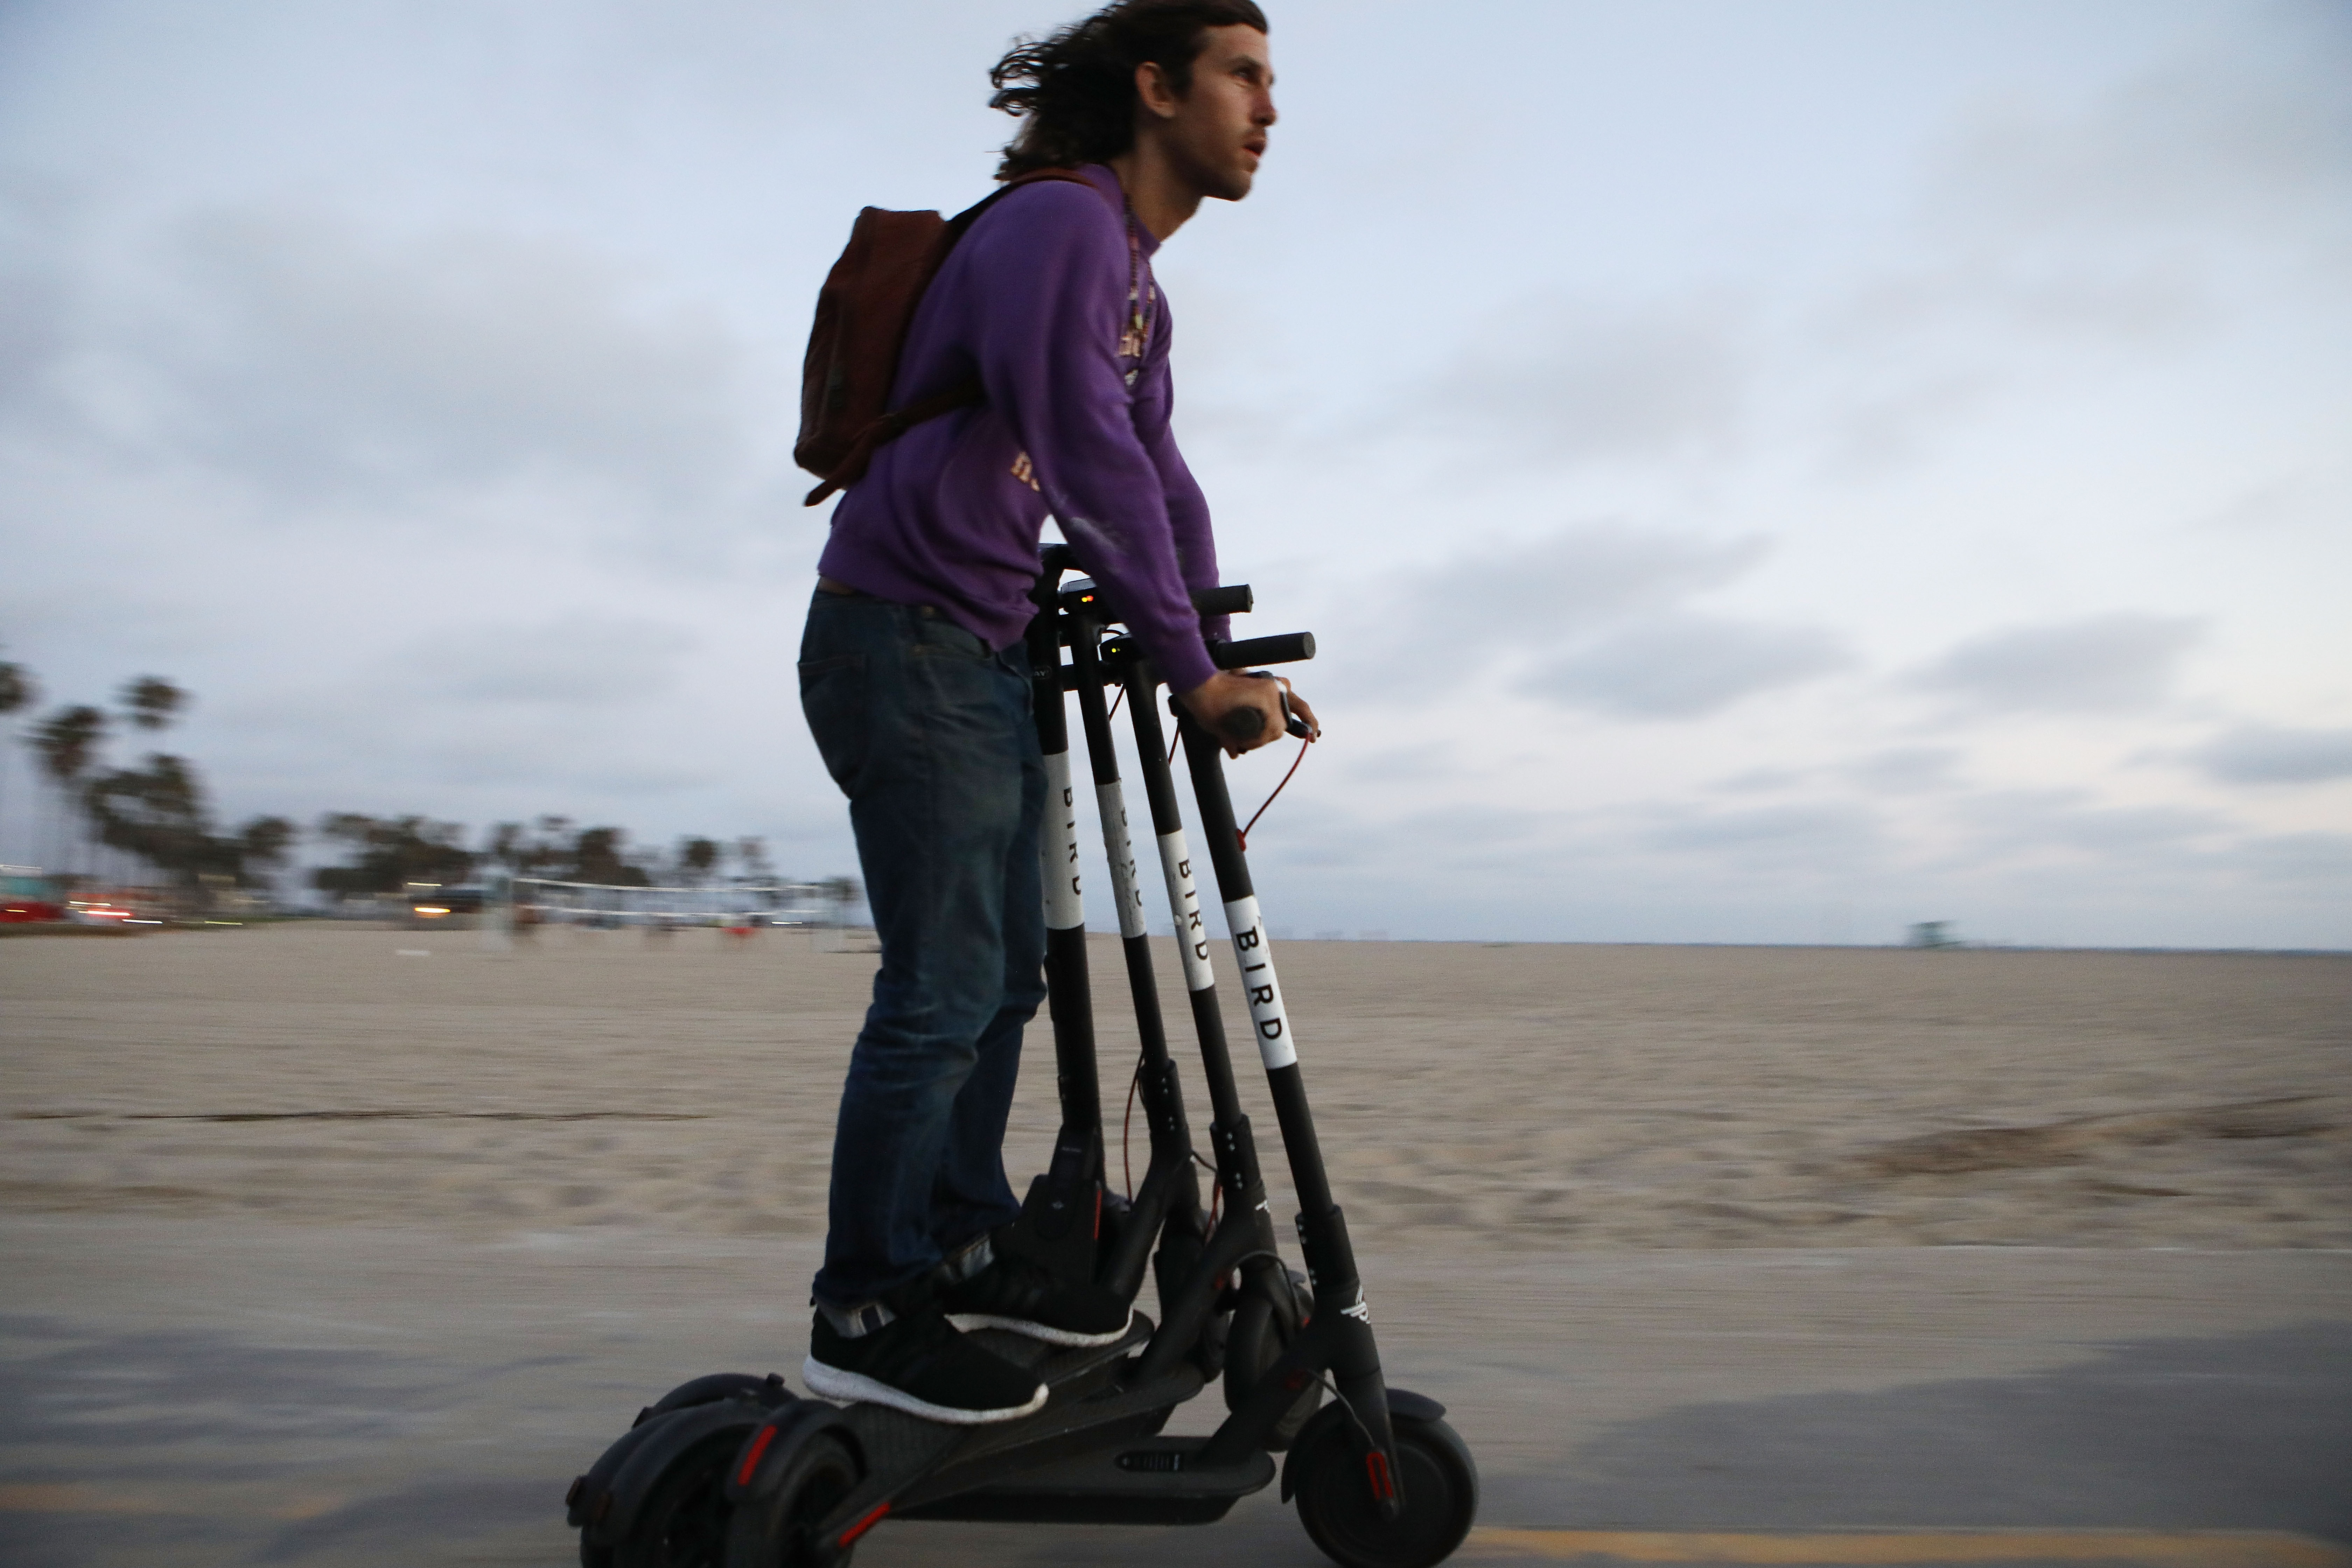 Bird's electric scooters are getting more rugged to handle